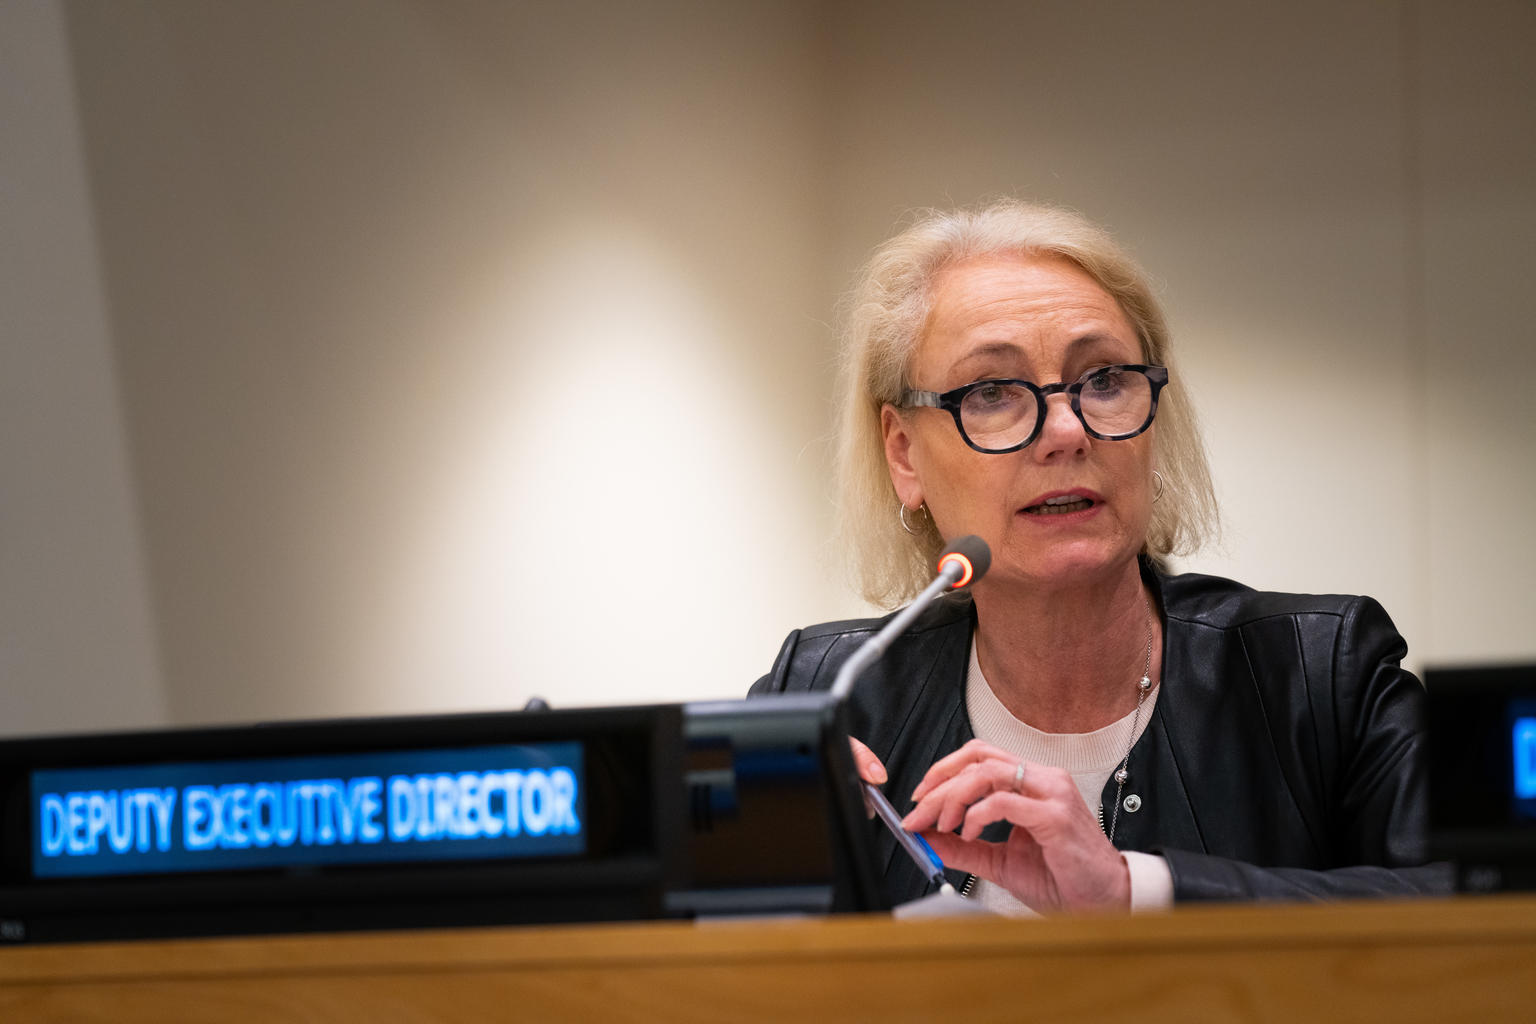 ARCHIVE: On 11 February 2020, Charlotte Petri Gornitzka, UNICEF Deputy Executive Director (Partnerships), speaks during the first regular session of the UNICEF 2020 Executive Board, at United Nations Headquarters in New York. © UNICEF/UNI288689/McIlwaine